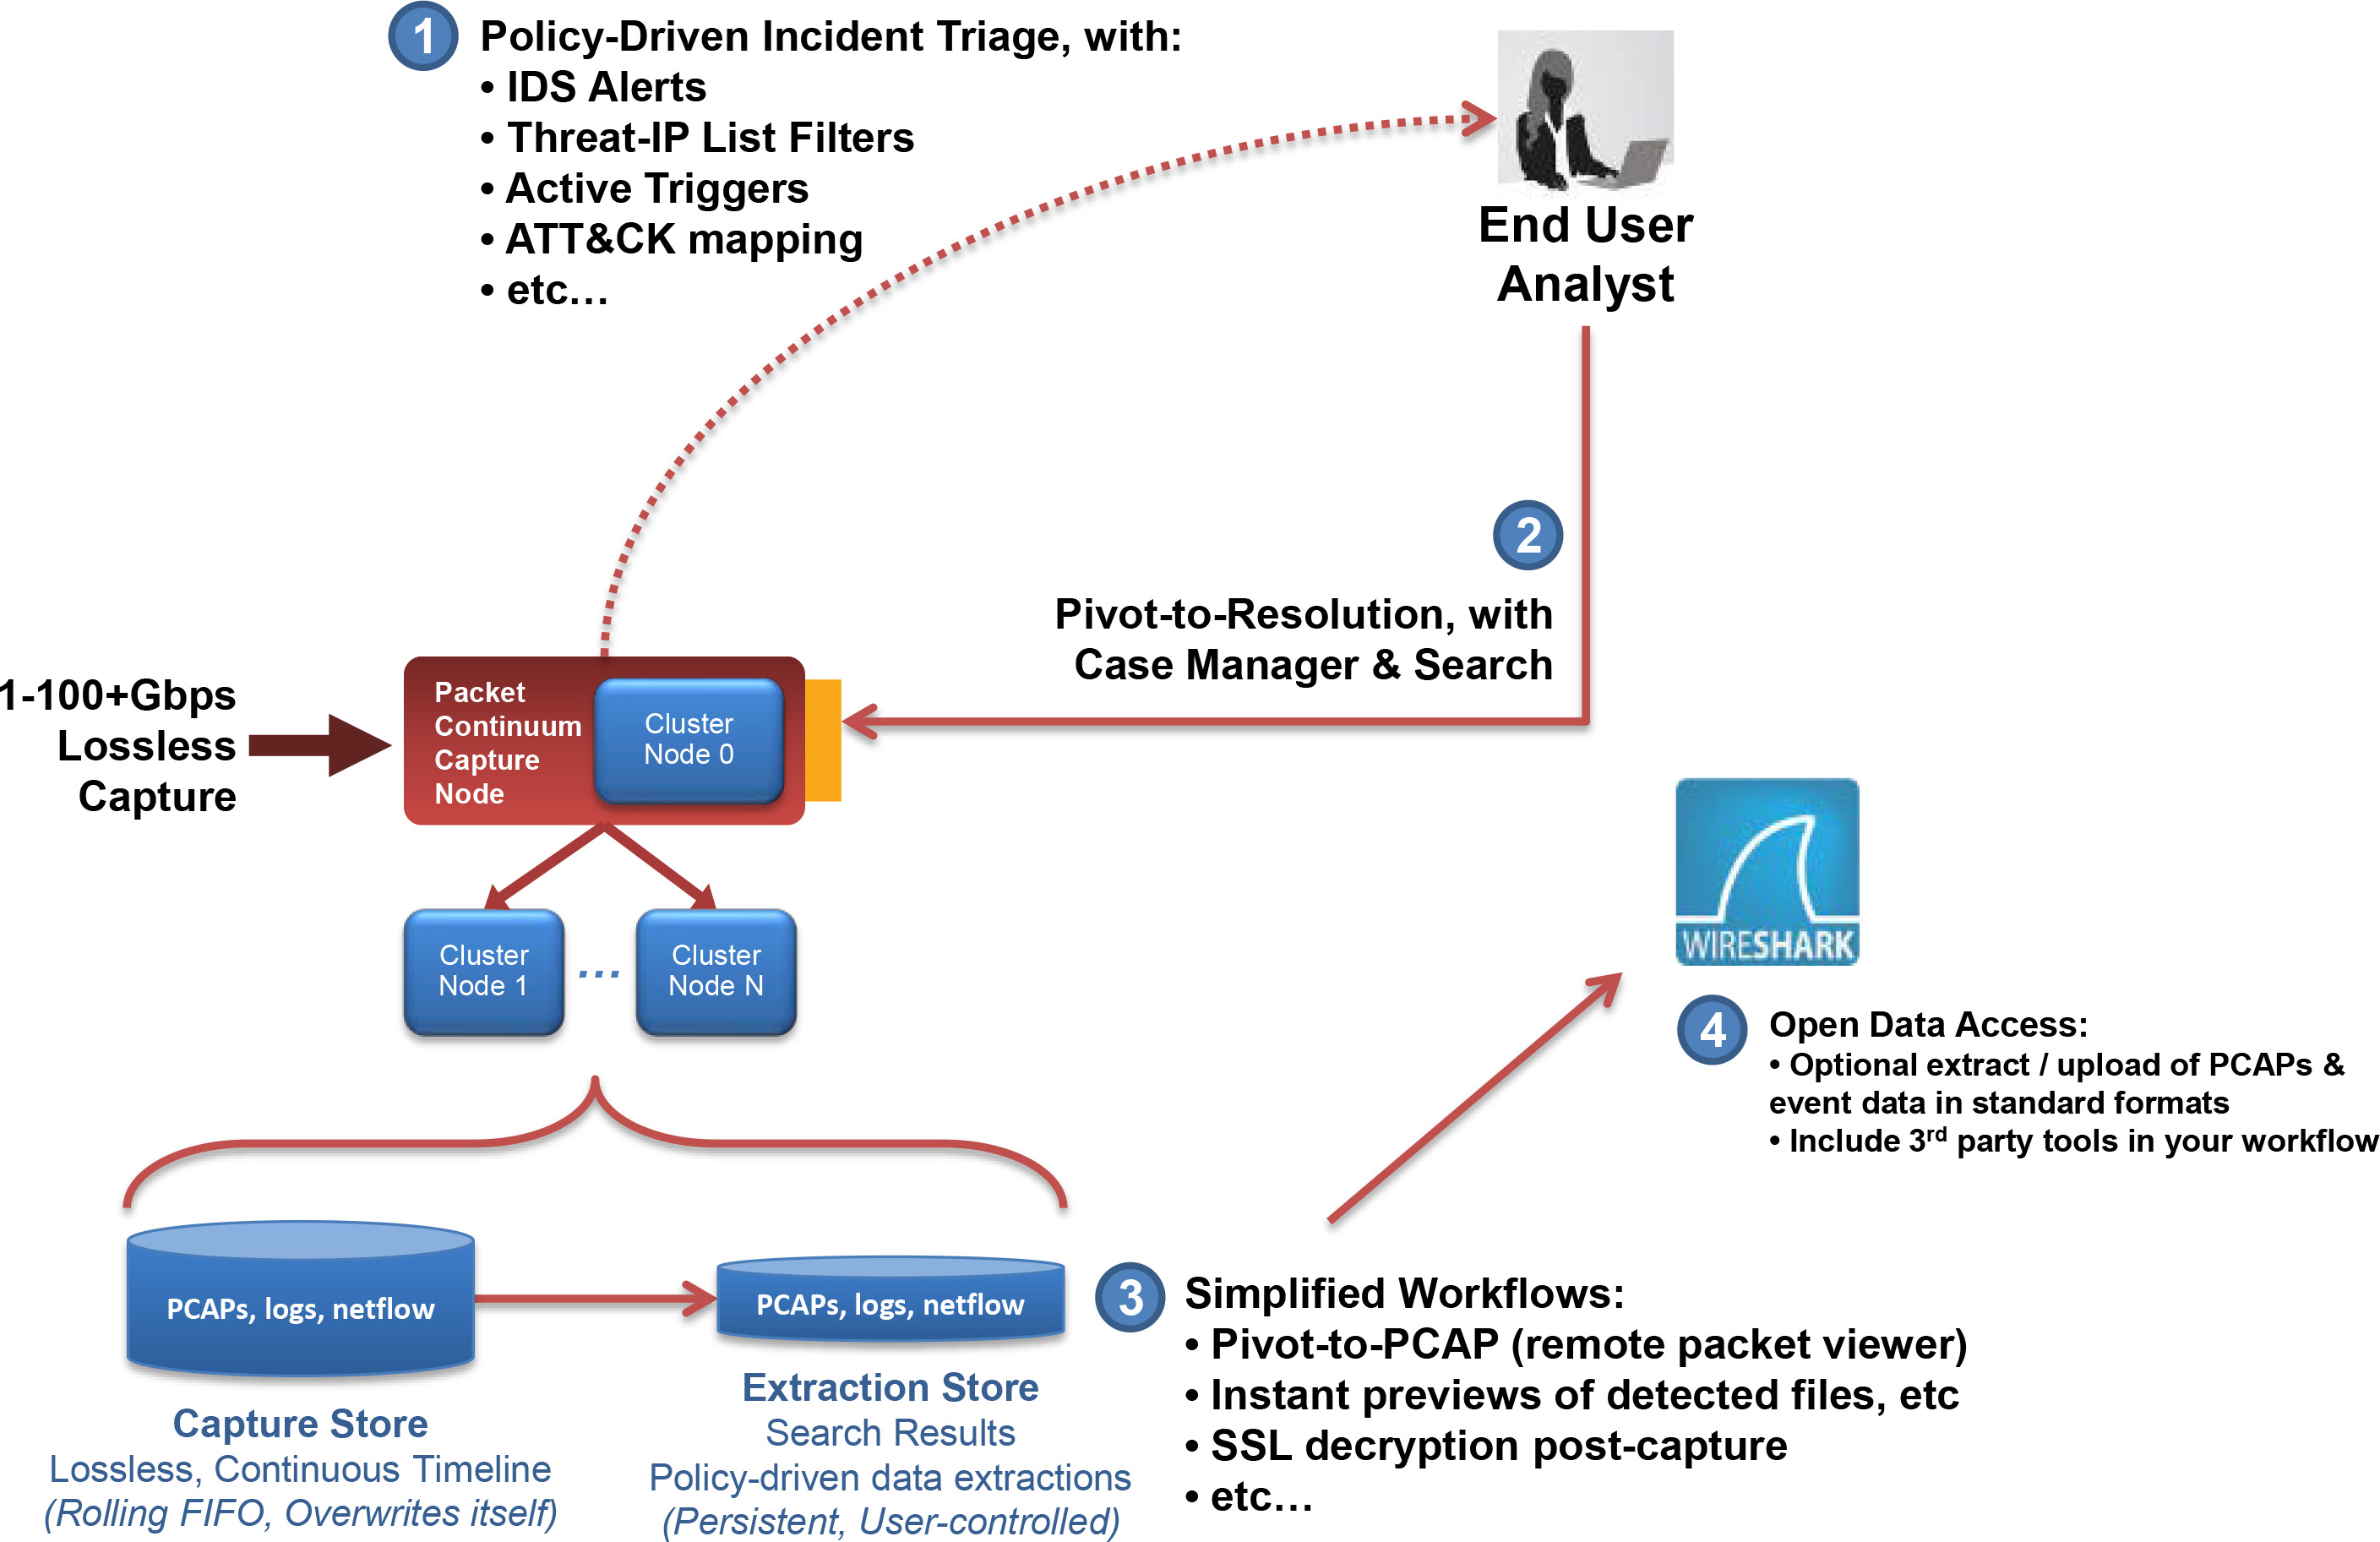 Diagram of simplified workflow